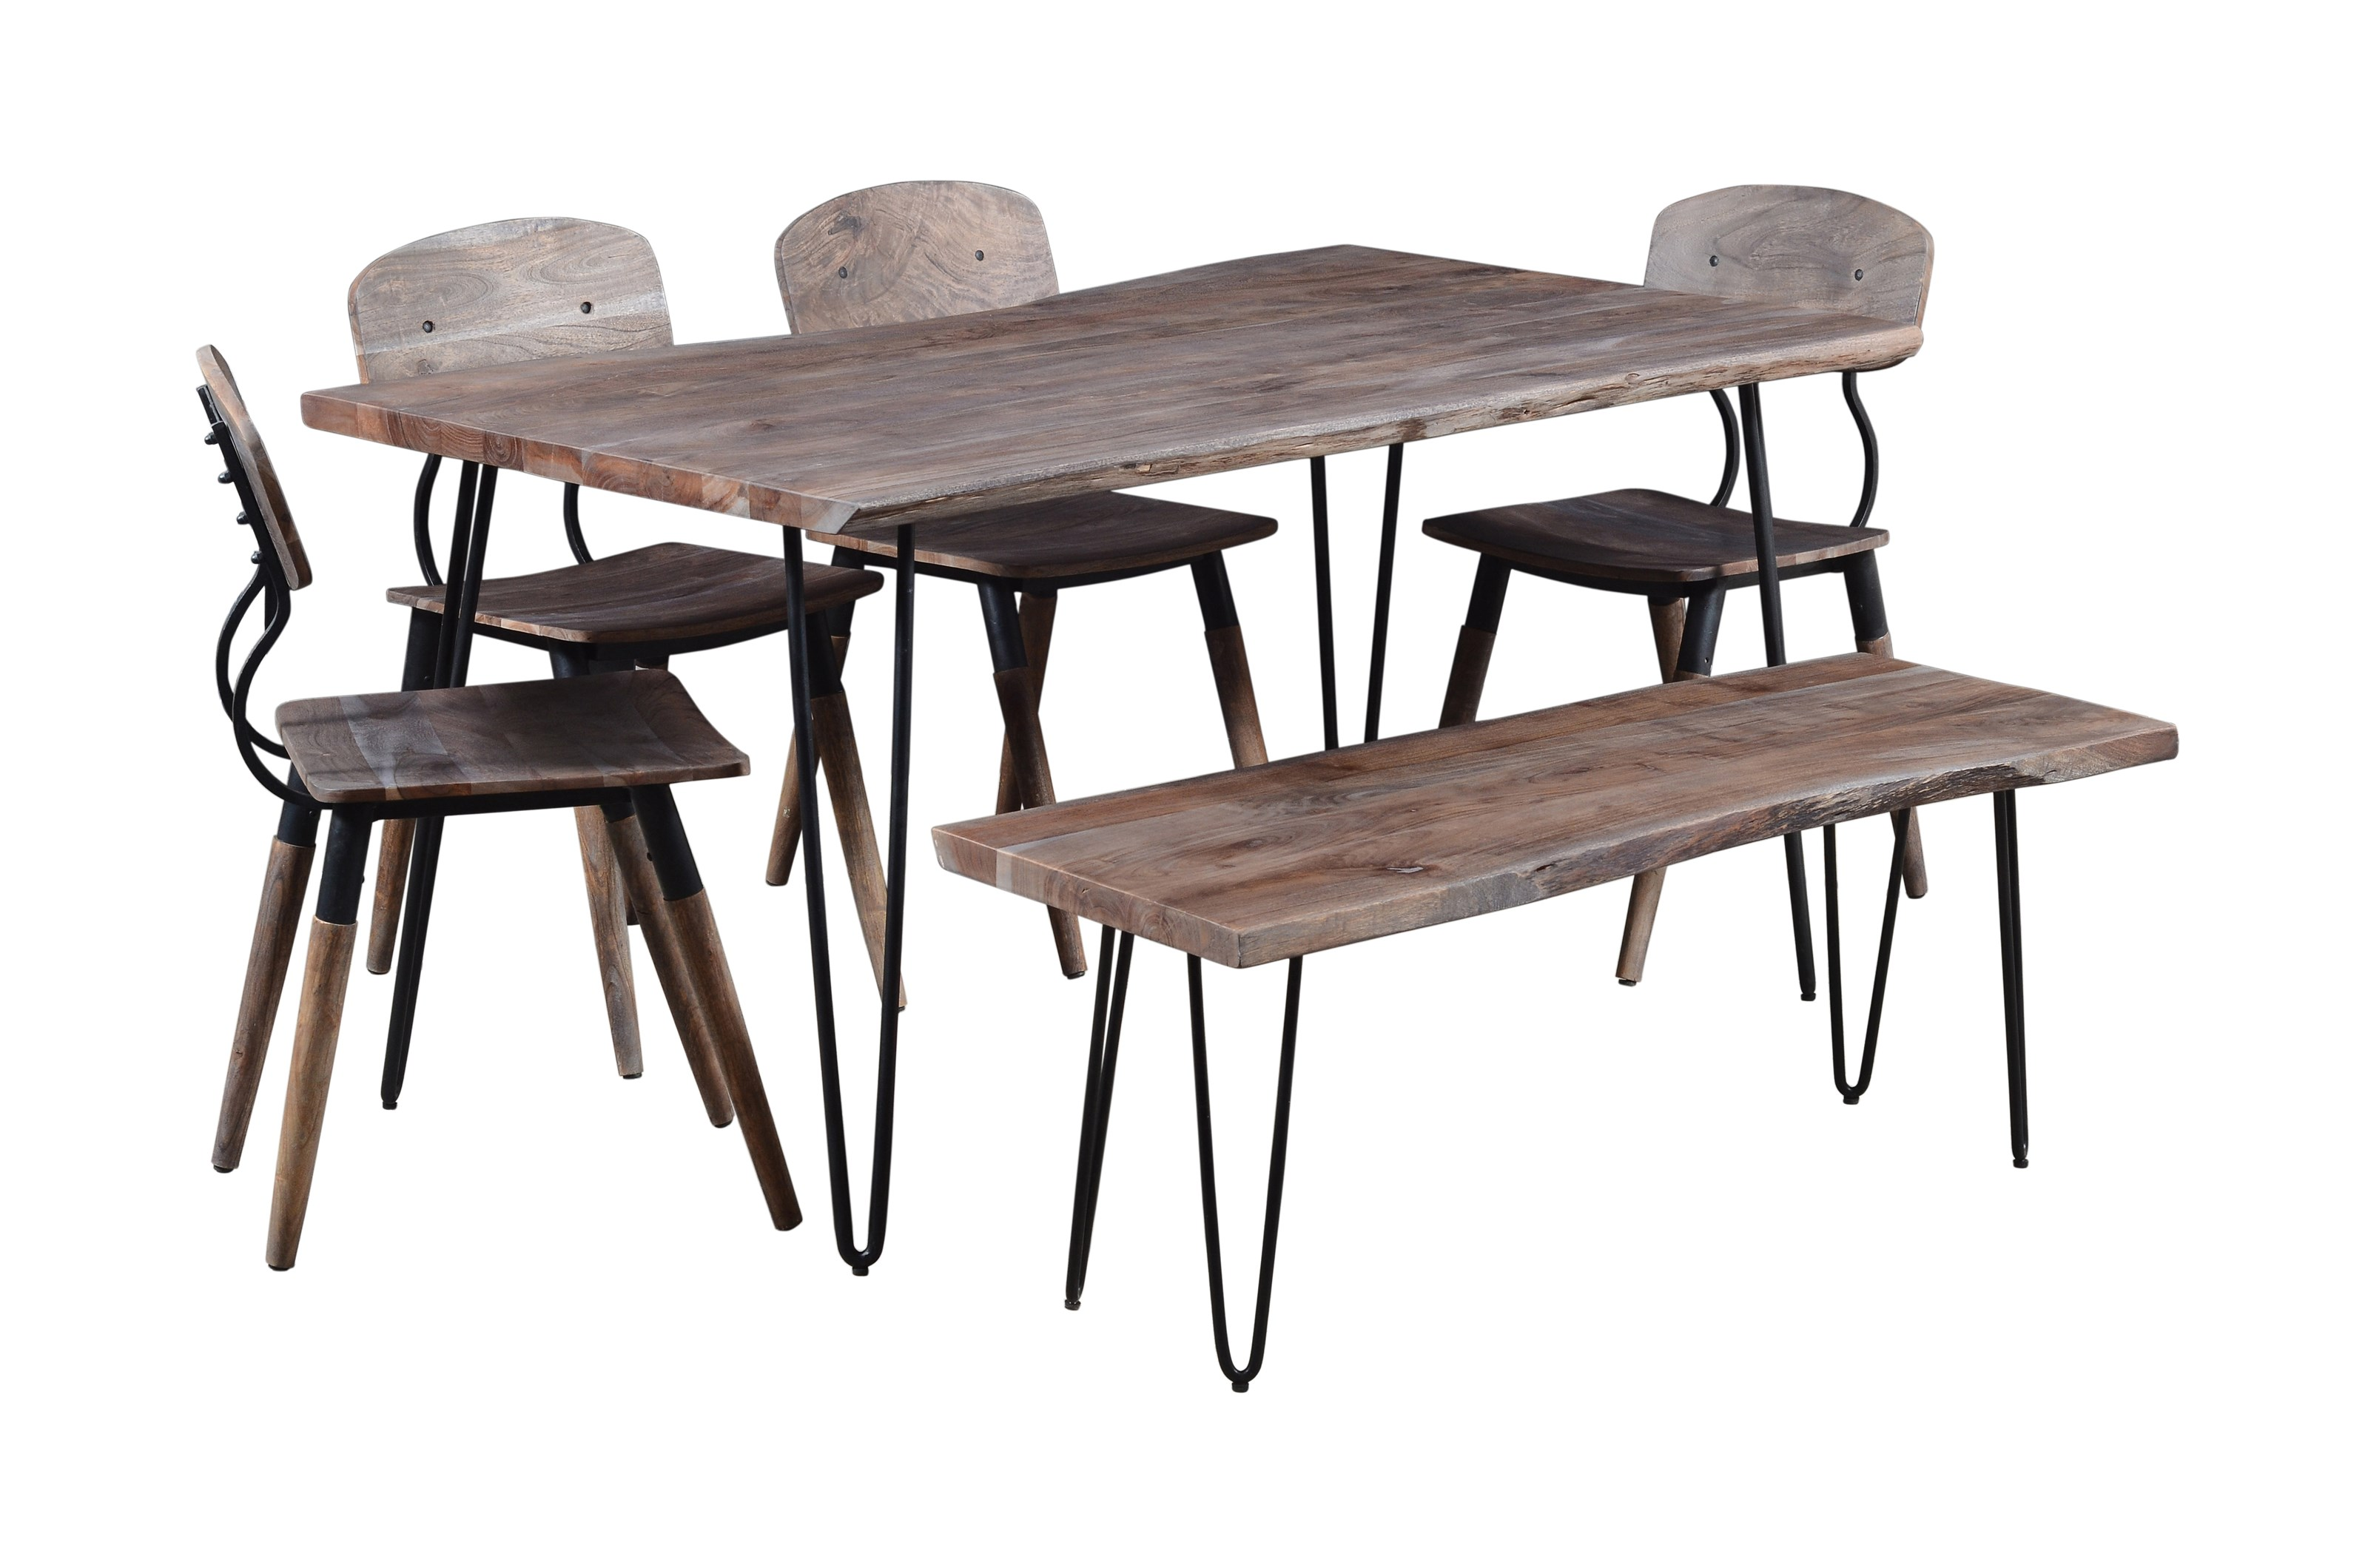 "Nature's Edge 60"" Dining Table with 4 Chairs and Bench by Jofran at Jofran"